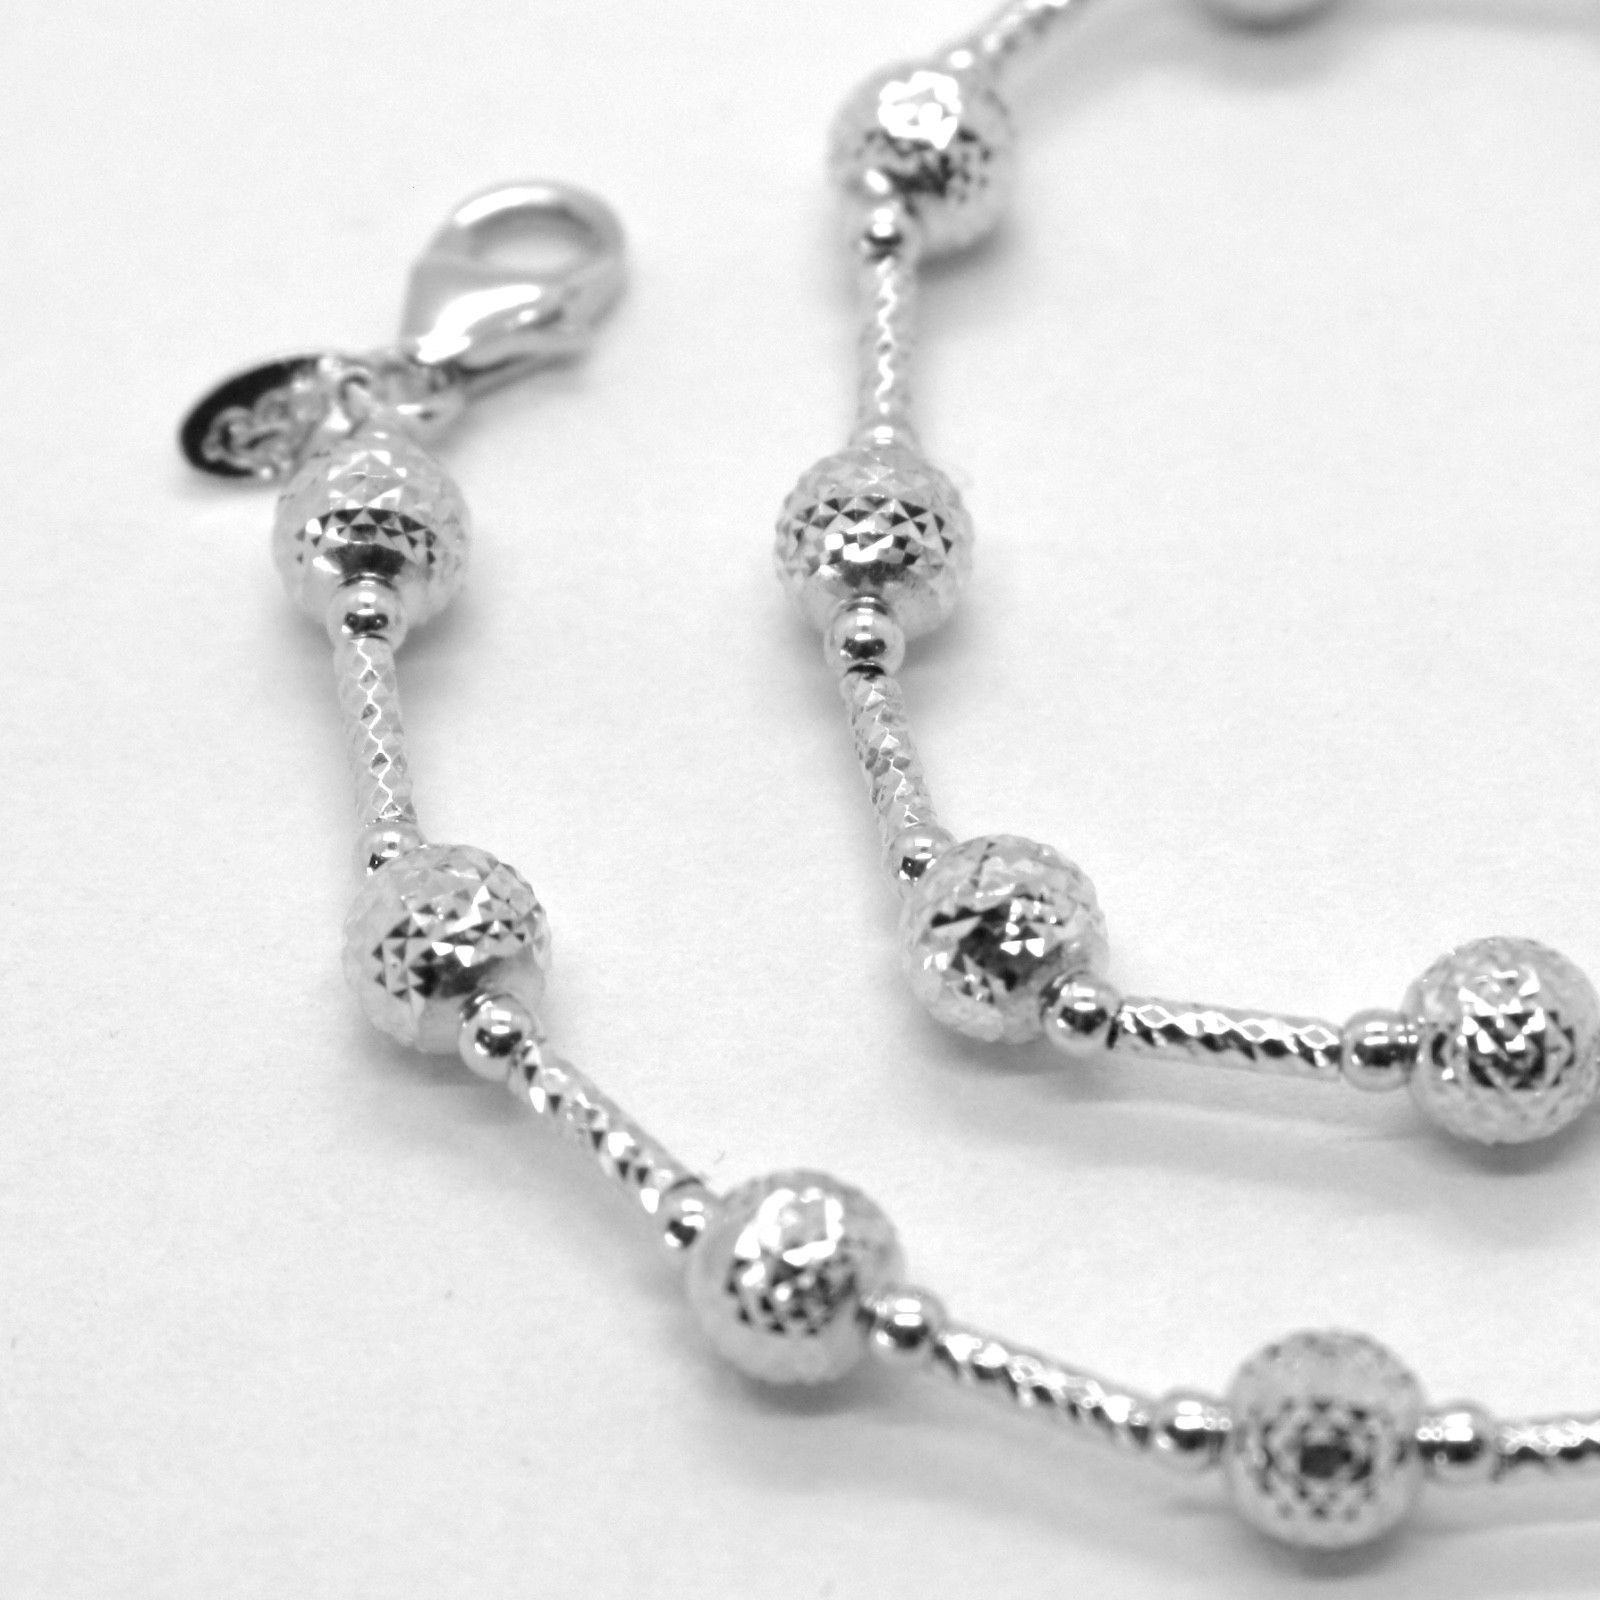 18K WHITE GOLD CHAIN FINELY WORKED 5 MM BALL SPHERES AND TUBE LINK, 15.8 INCHES